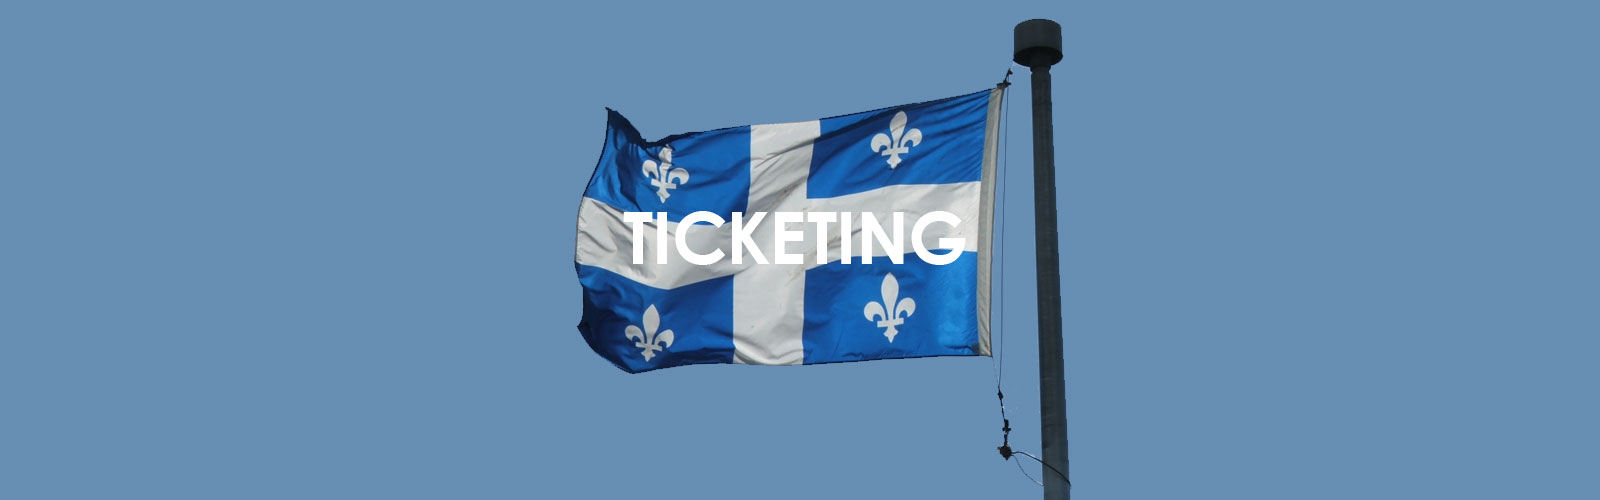 quebec-ticketing